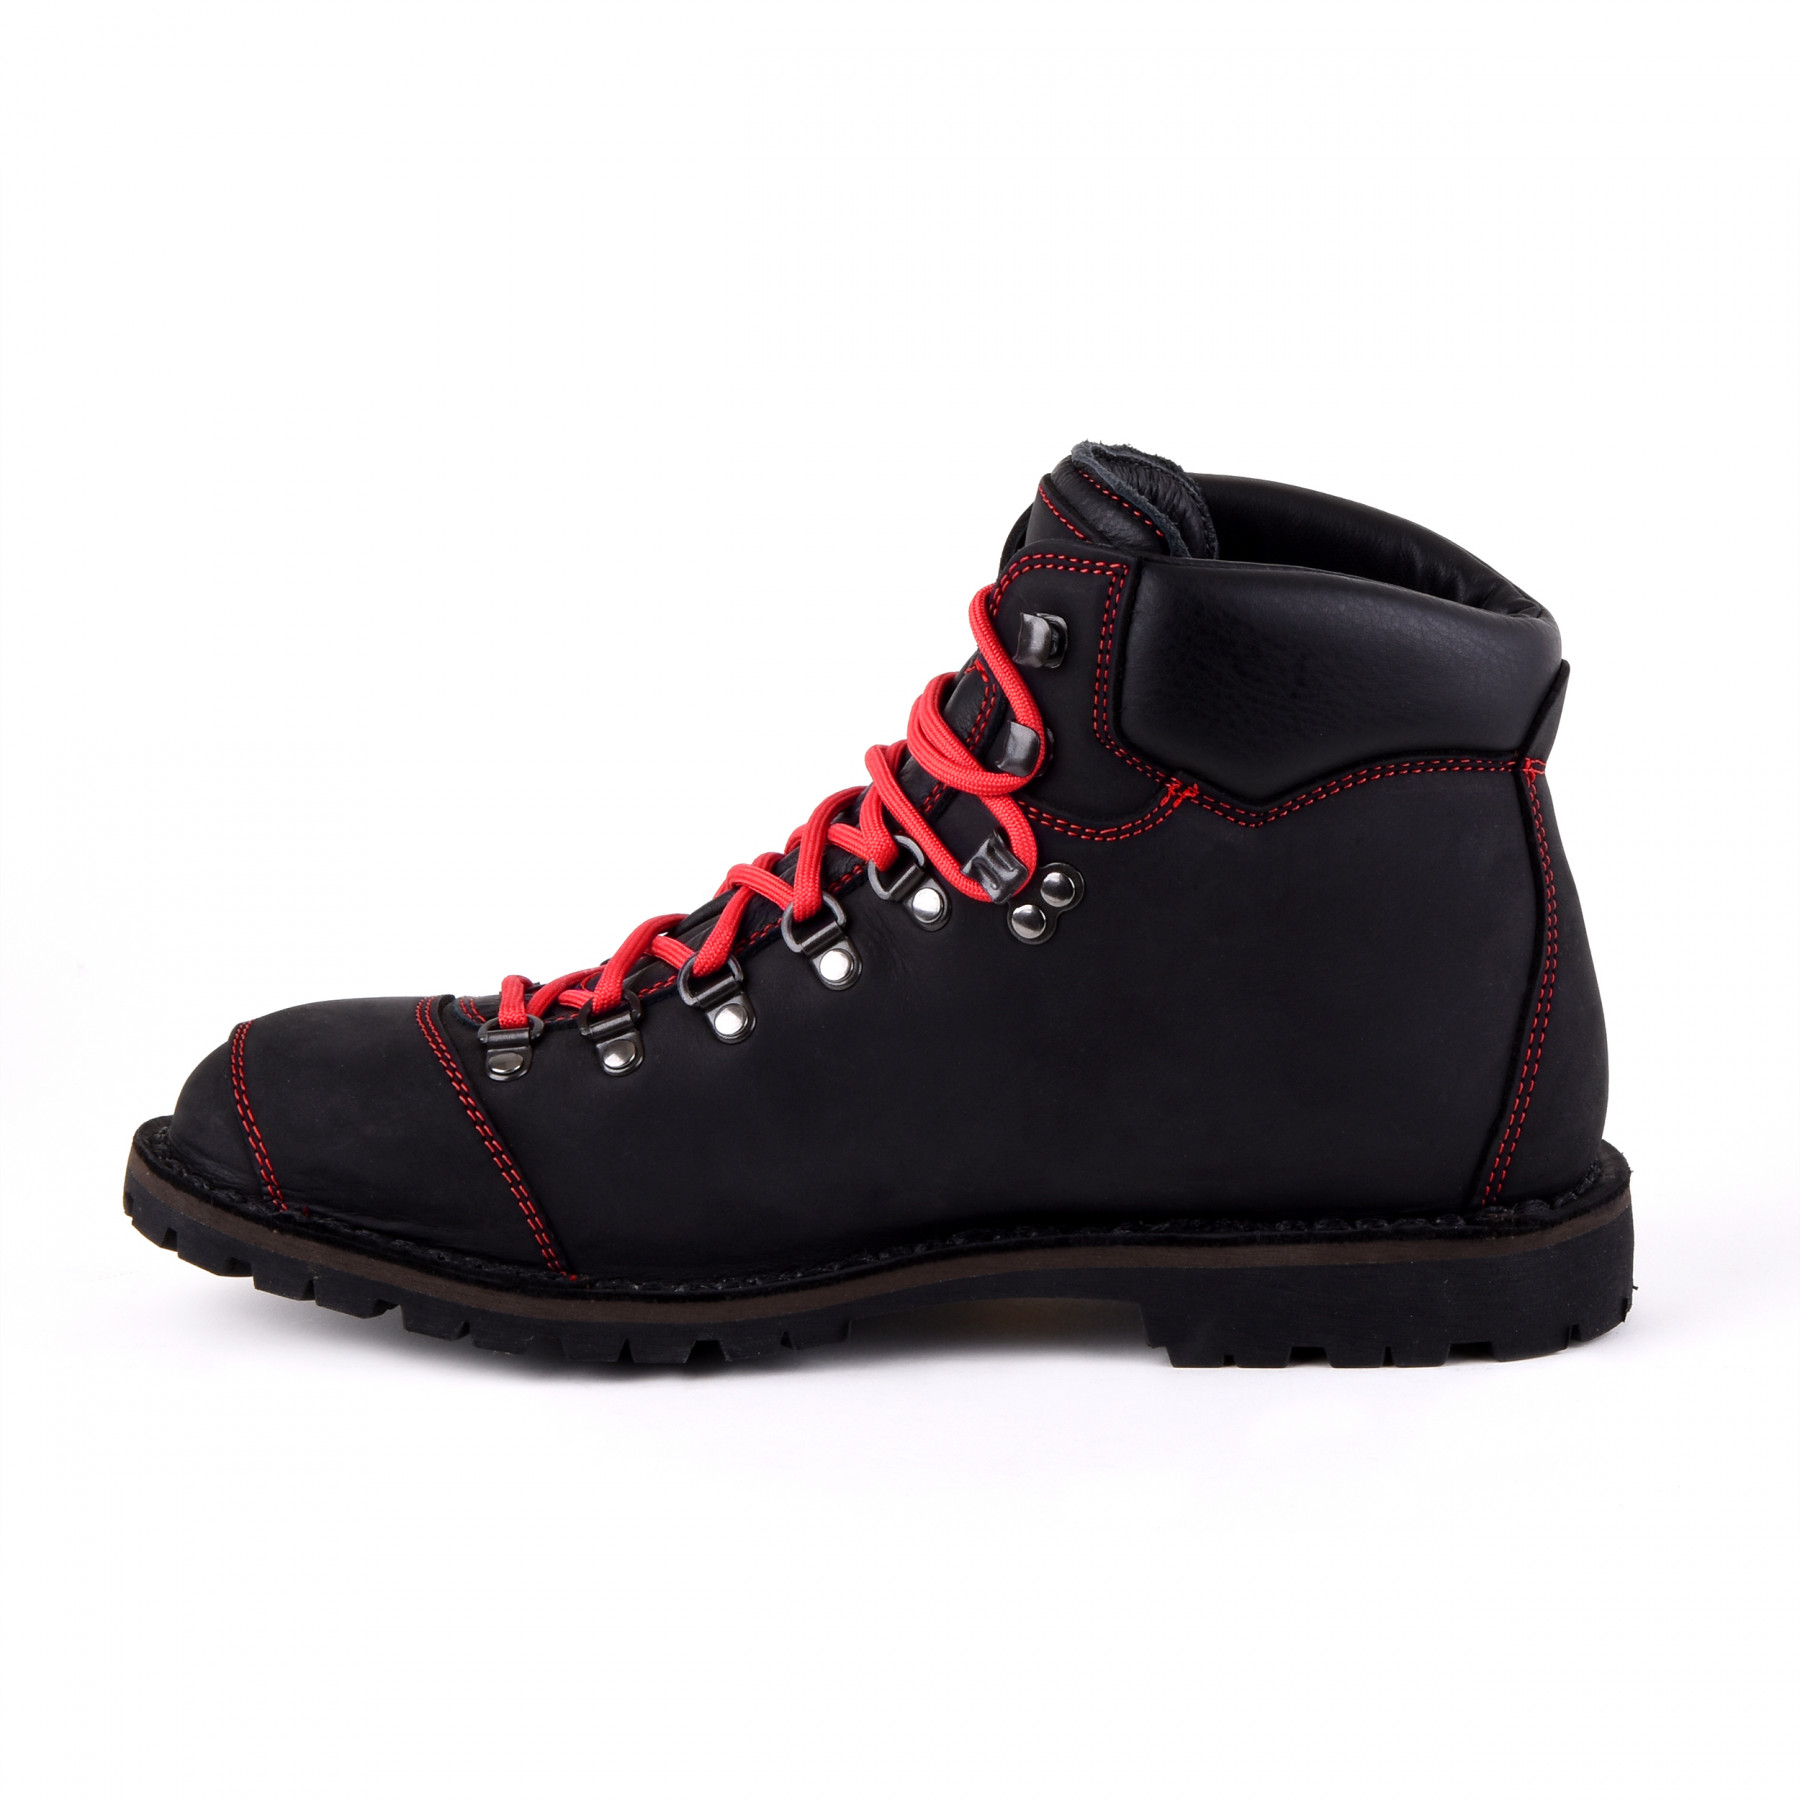 Biker Boot Adventure Denver Black, black ladies boot, red stitching